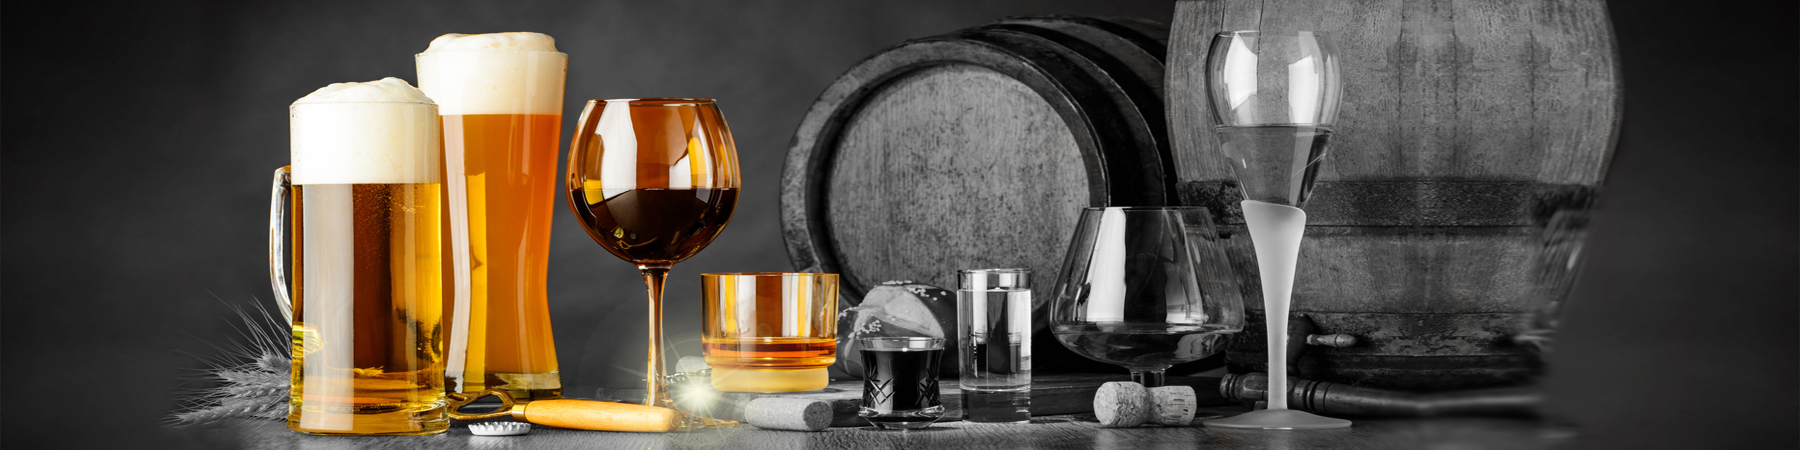 alcoholic drinks on wooden table in glasses, mugs and shots with barrel in background